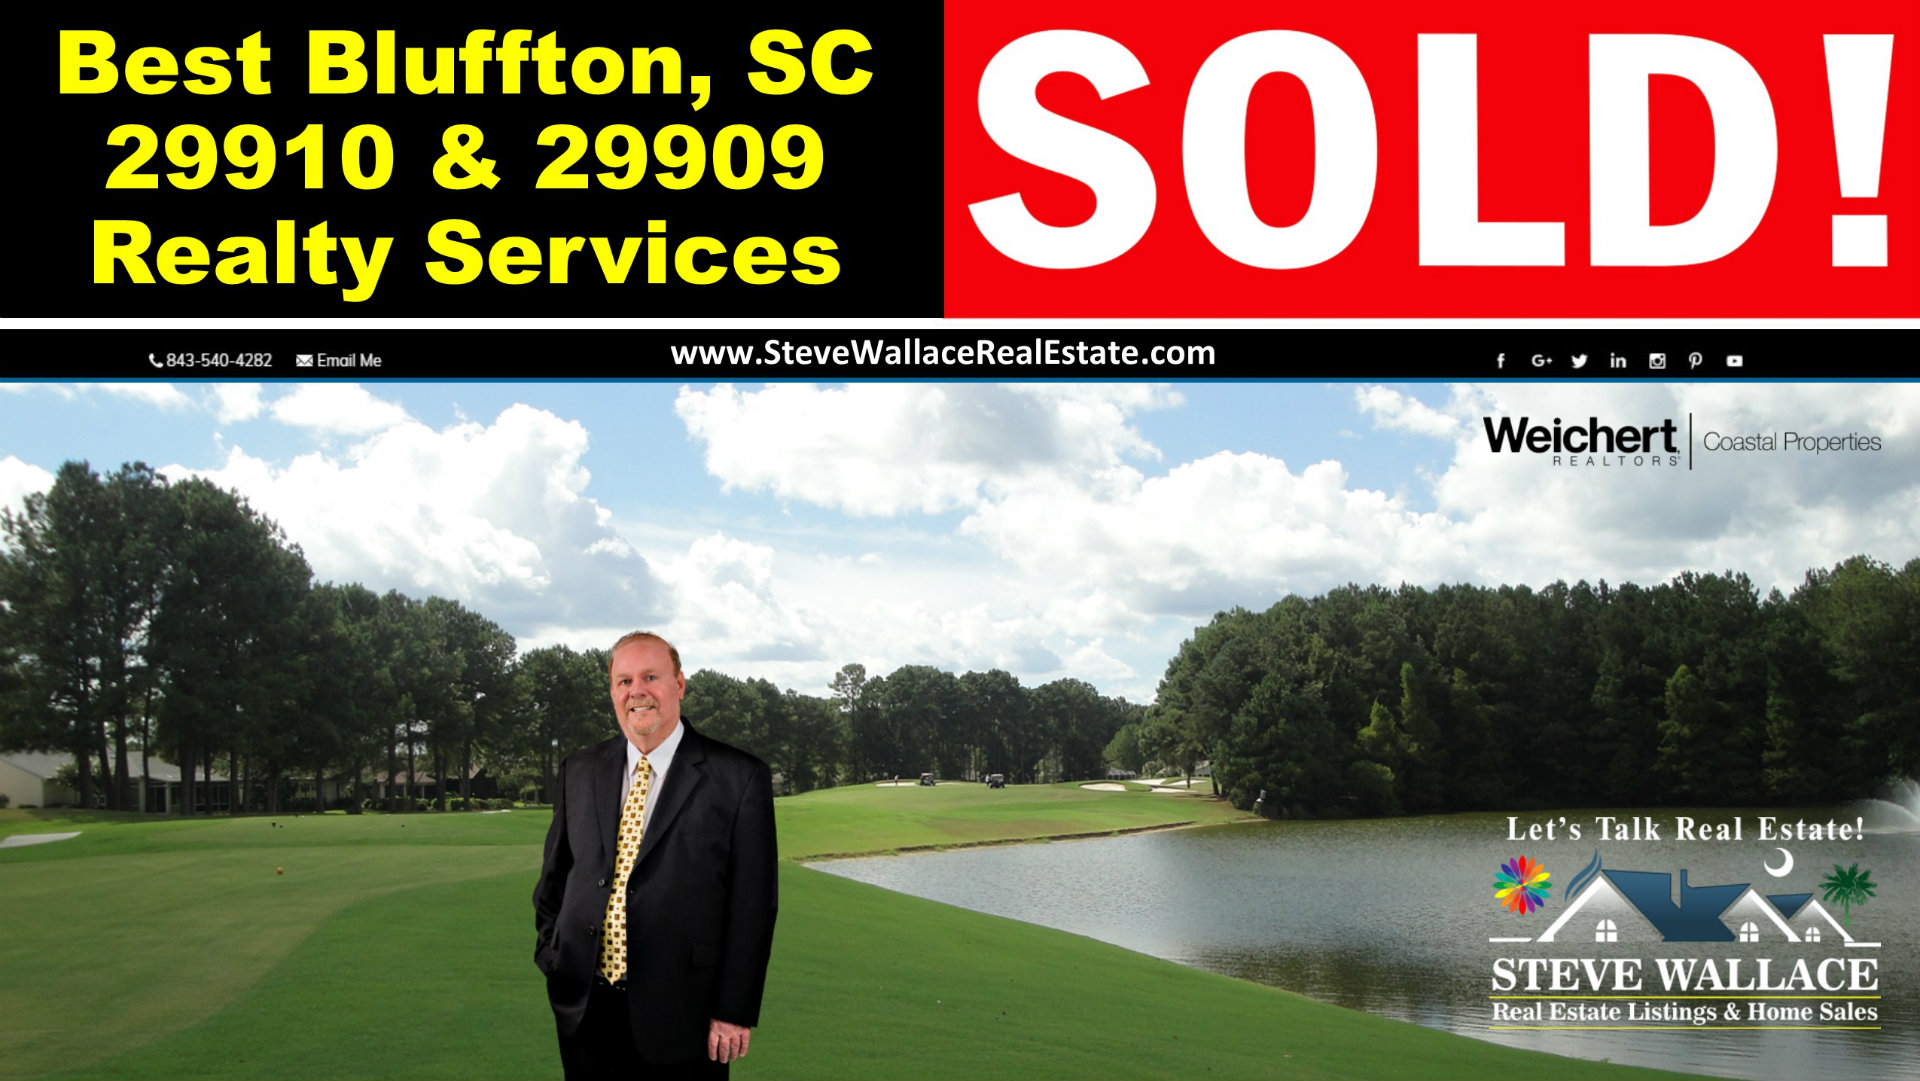 best realtor, bluffton sc 29910 and 29909, realty service, steve wallace